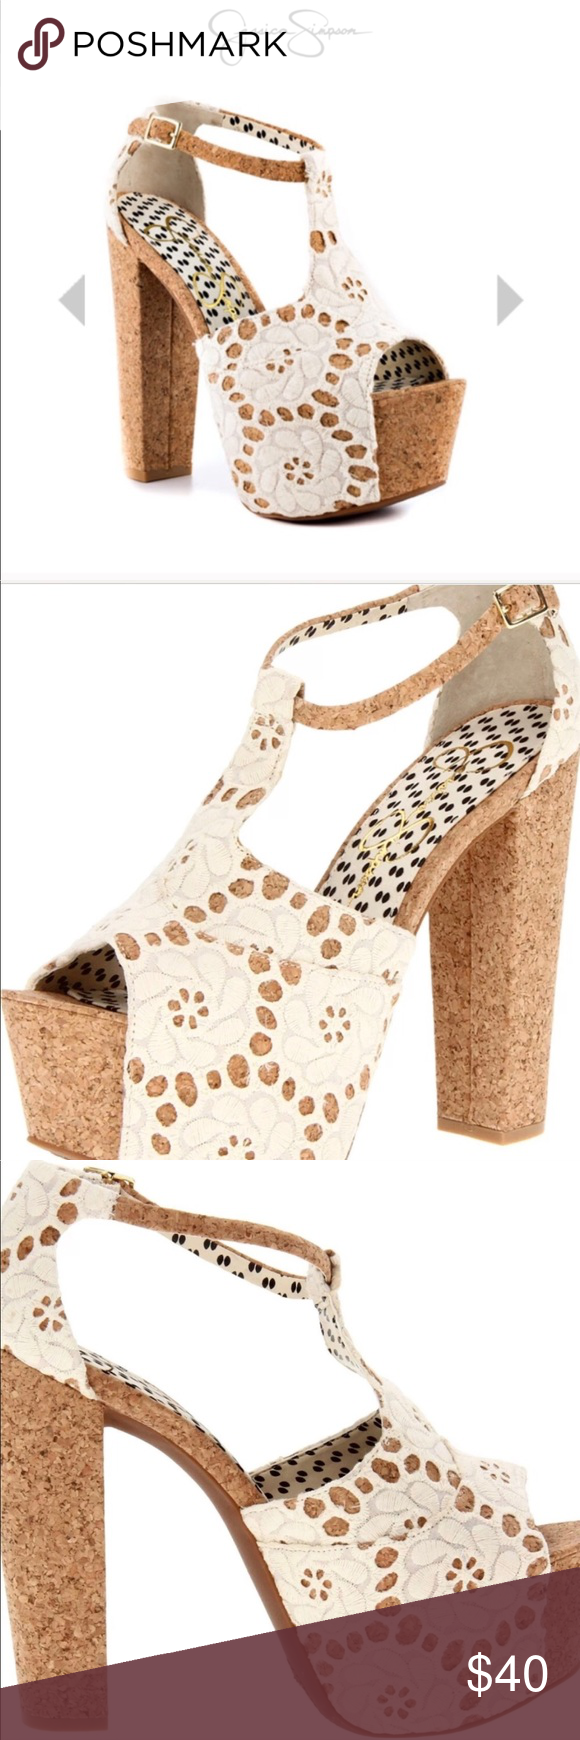 4554e69bd50 Jessica Simpson Dany4 Cream Macrame Cork Heels Jessica Simpson DANY4 cream  lace open toe high heel